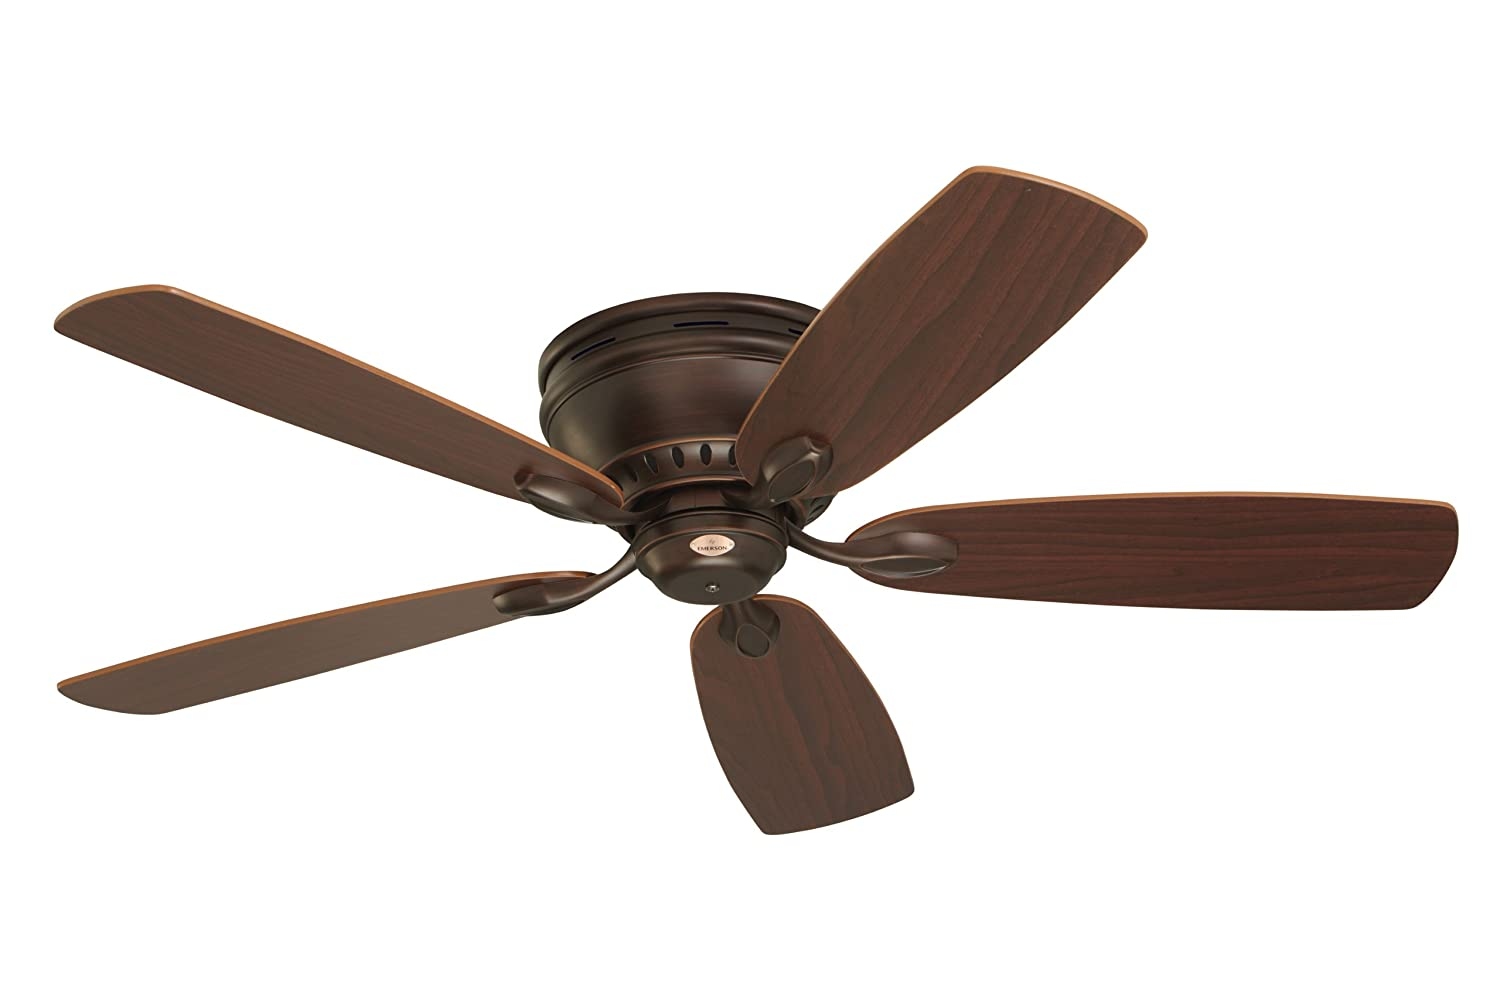 Emerson Ceiling Fans CF905VNB Prima Snugger 52 Inch Low Profile Fan With Wall Control Light Kit Adaptable Venetian Bronze Finish